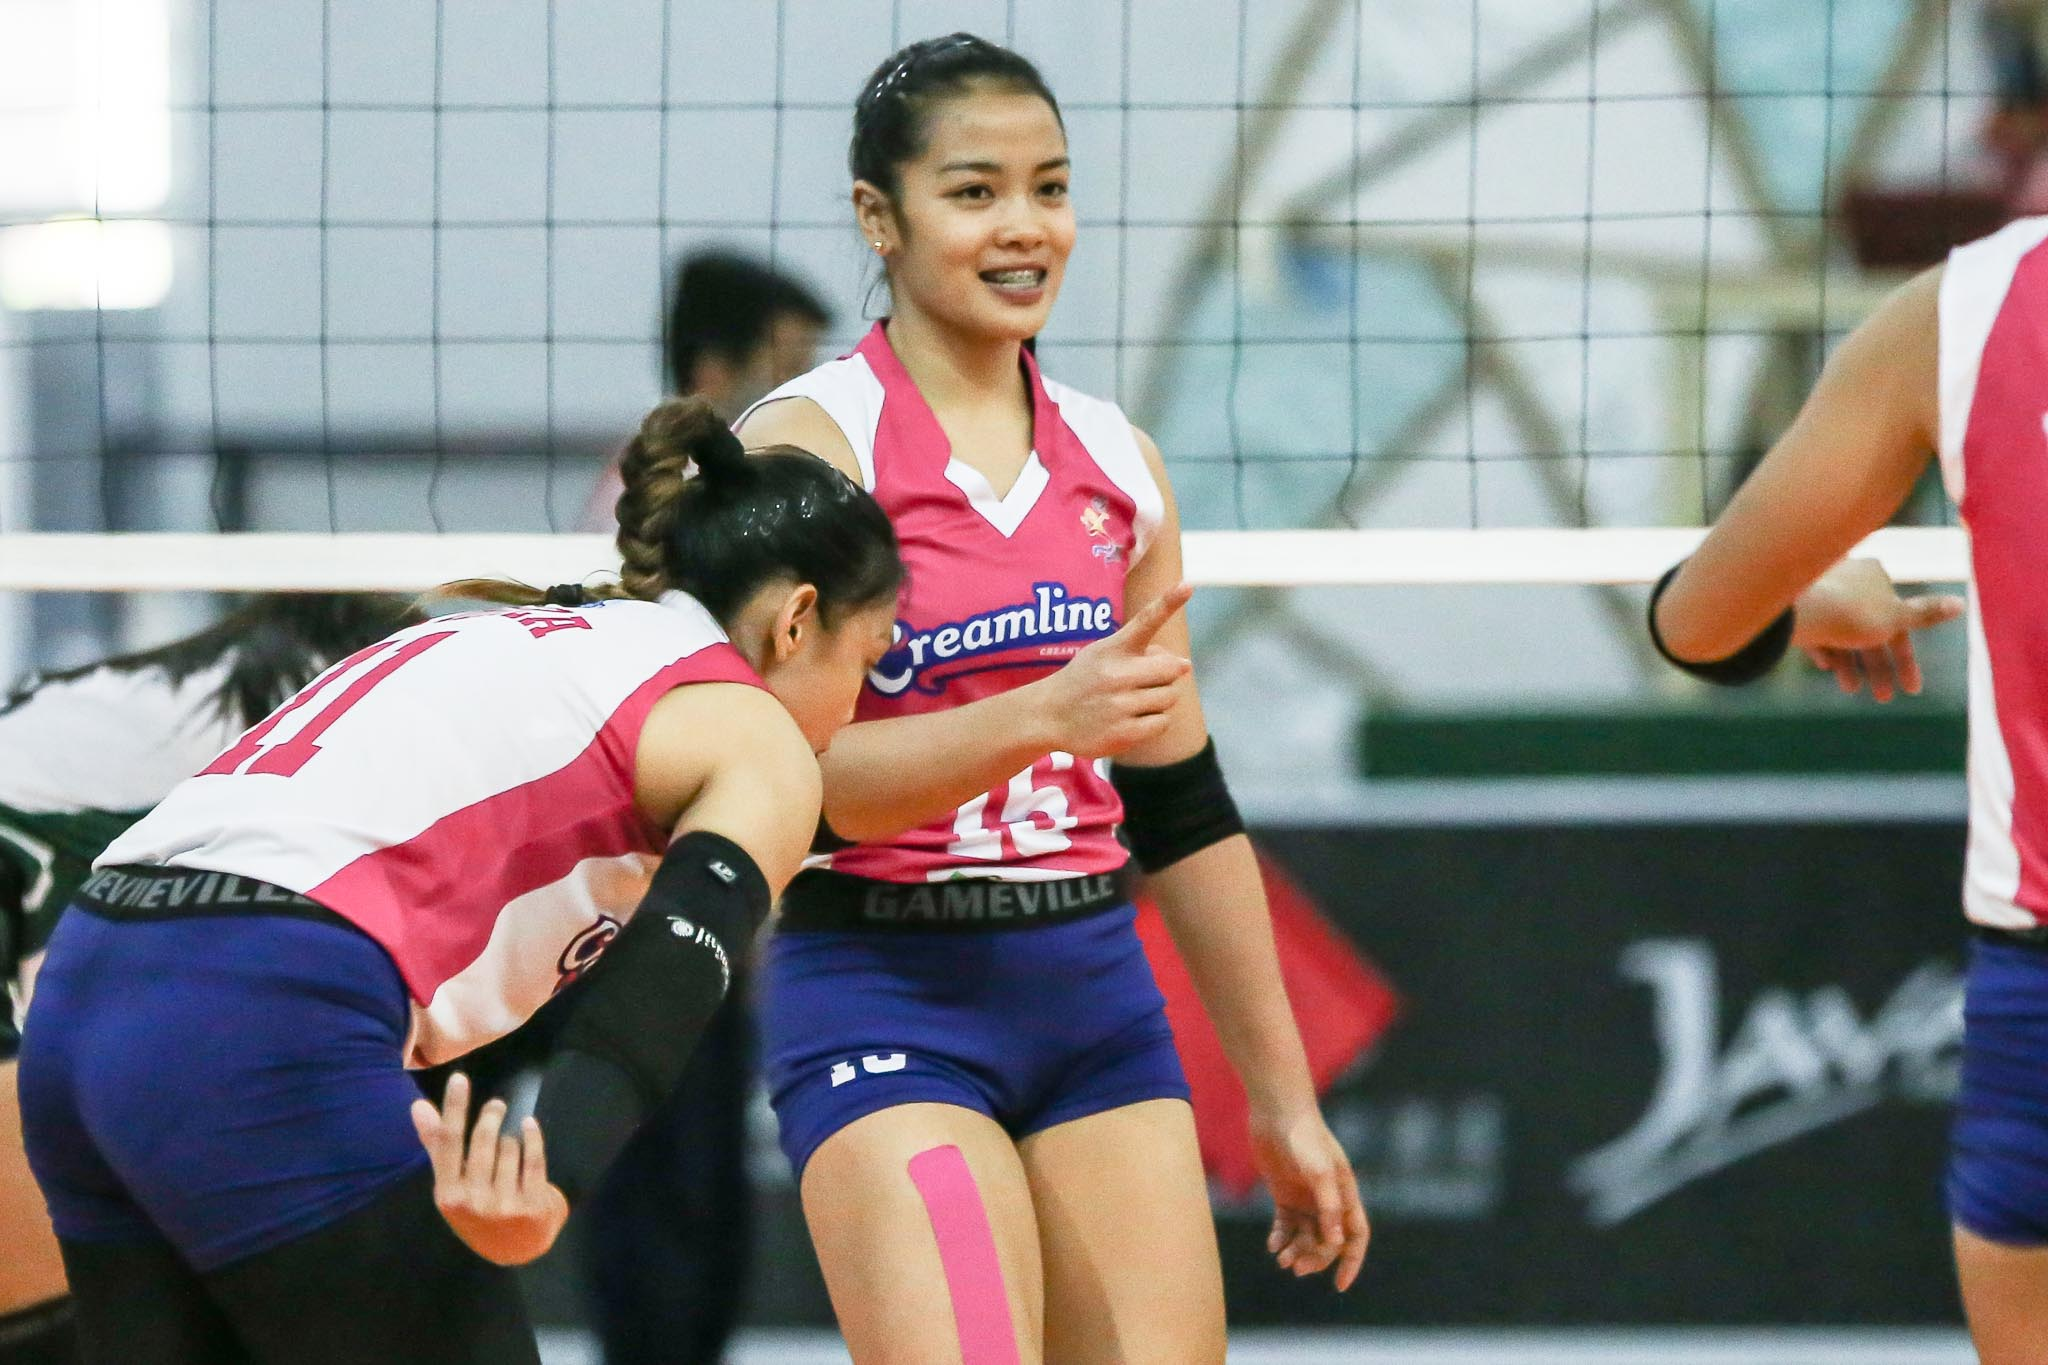 2021-PVL-Open-Creamline-vs-Army-Jema-Galanza-2 Galanza remains ready despite not being 100-percent News PVL Volleyball  - philippine sports news